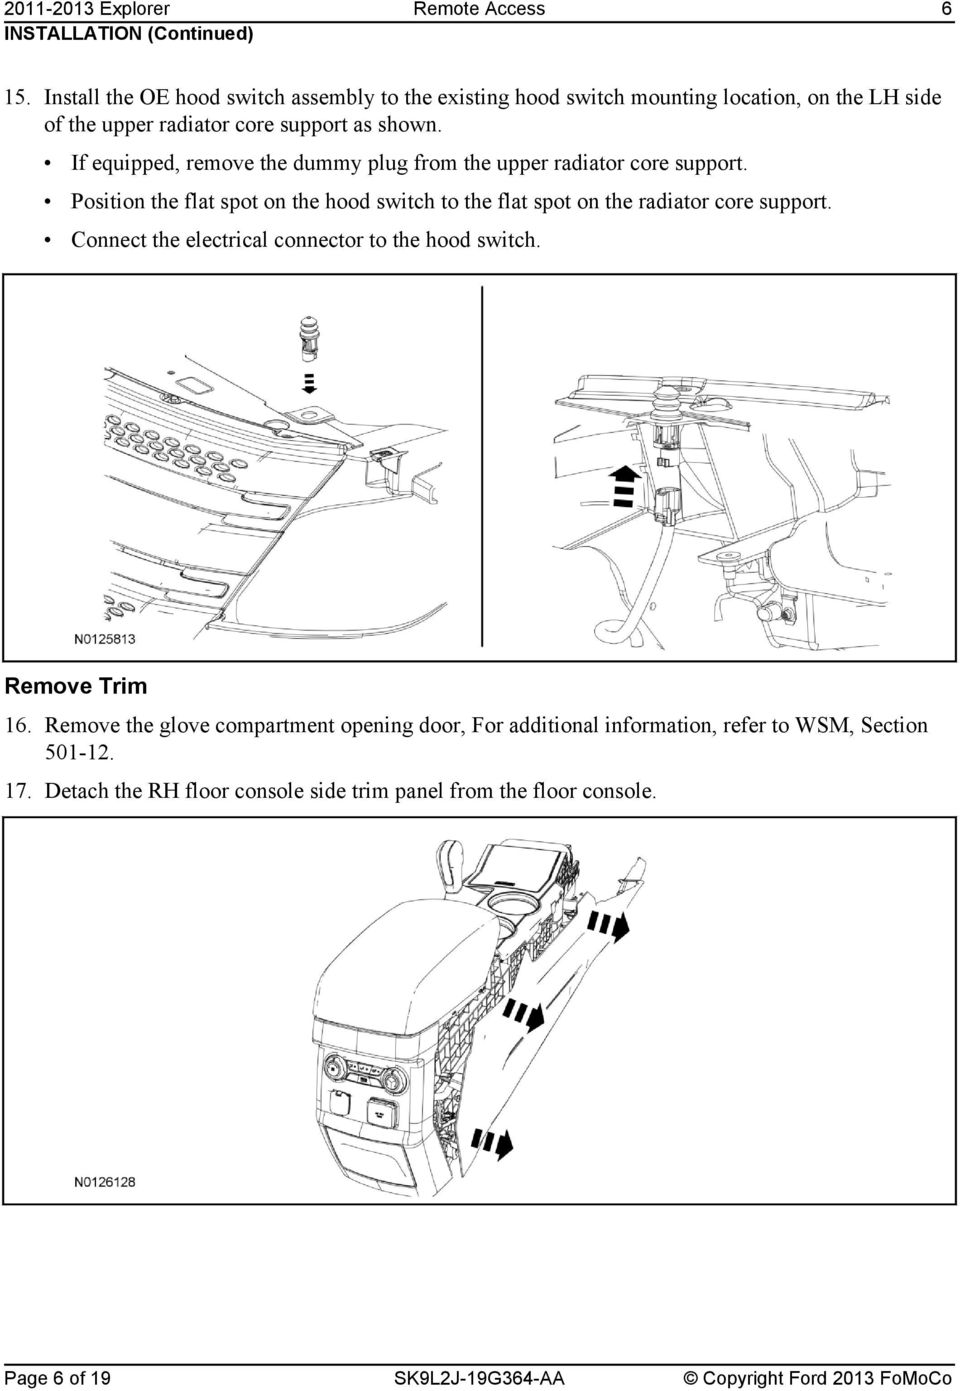 Remote Access System Installation Pdf 2009 Honda Recon Wiring Diagram If Equipped Remove The Dummy Plug From Upper Radiator Core Support Position